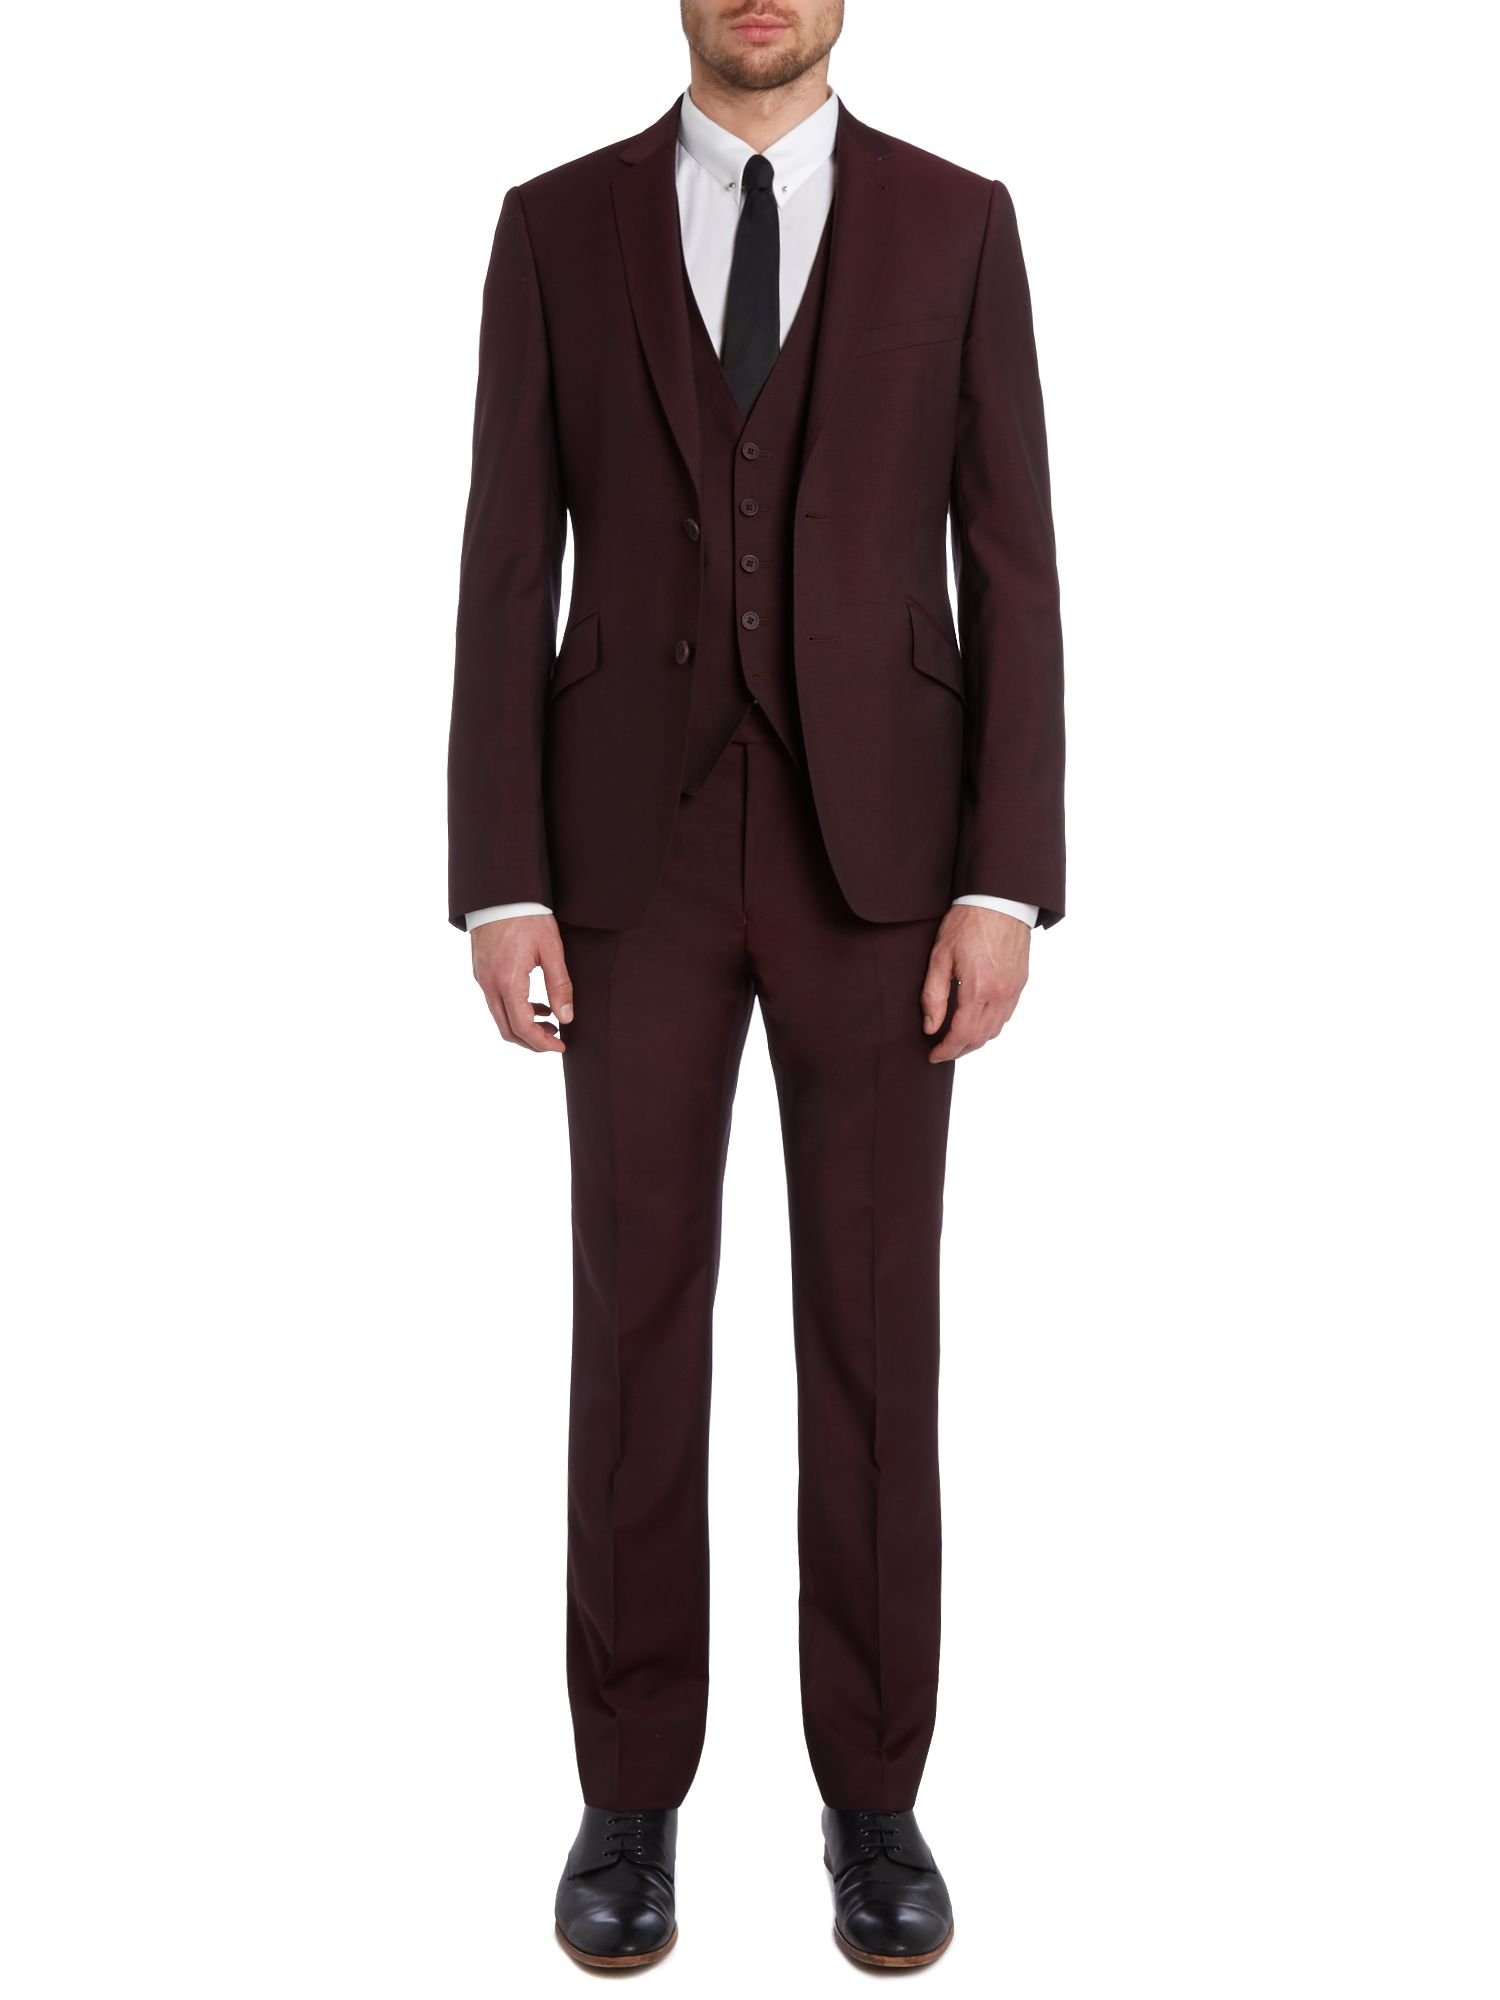 Linout extra slim solid three piece suit